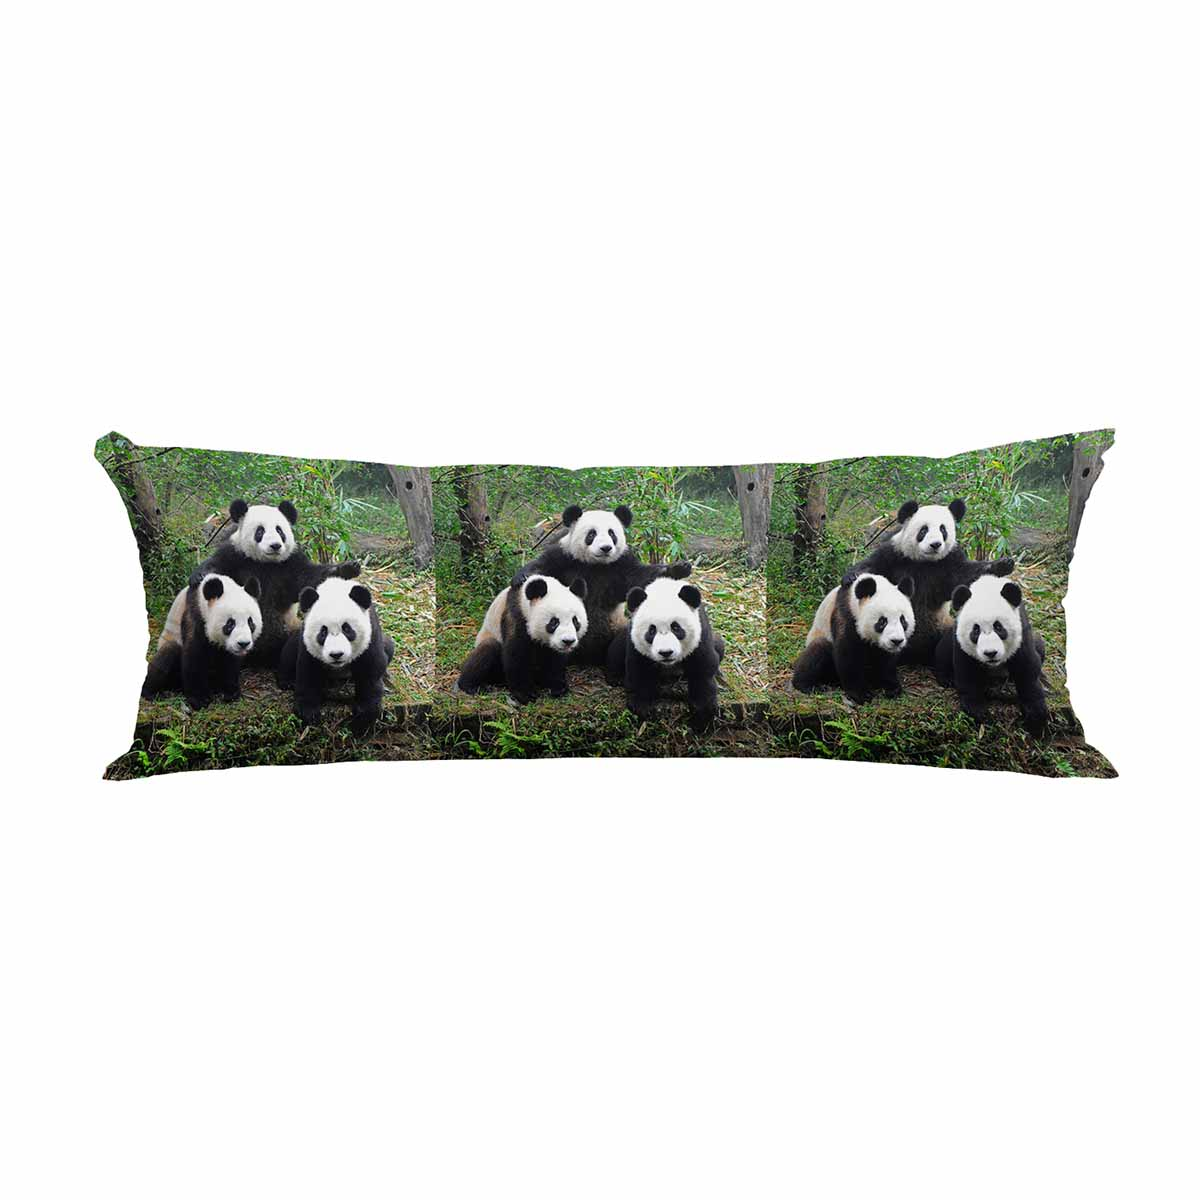 pkqwtm three giant pandas posing for camera long body pillow case cover pillow cushion size 20x60 inches